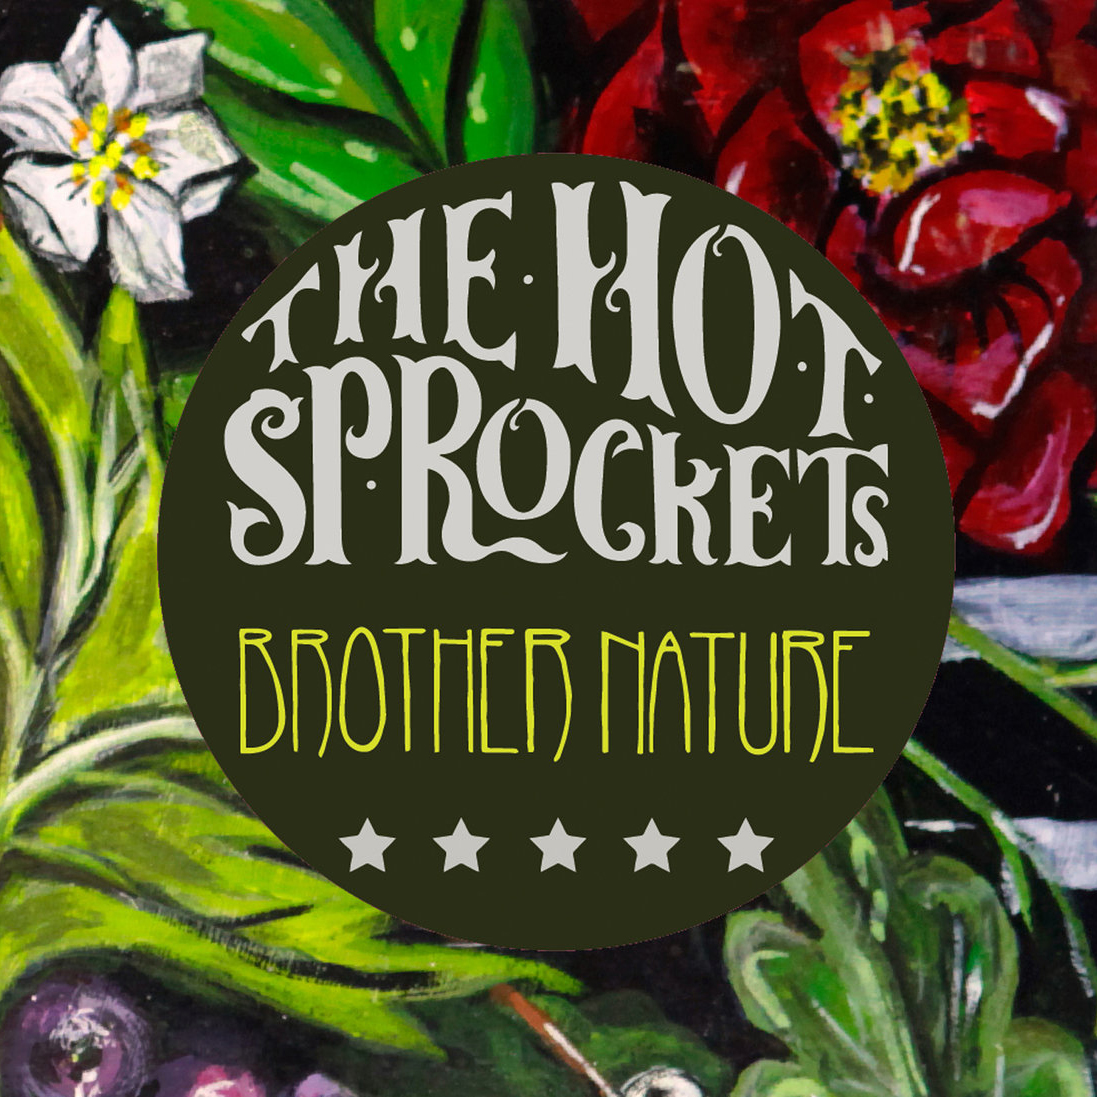 The Hot Sprockets Soul Brother Album Cover